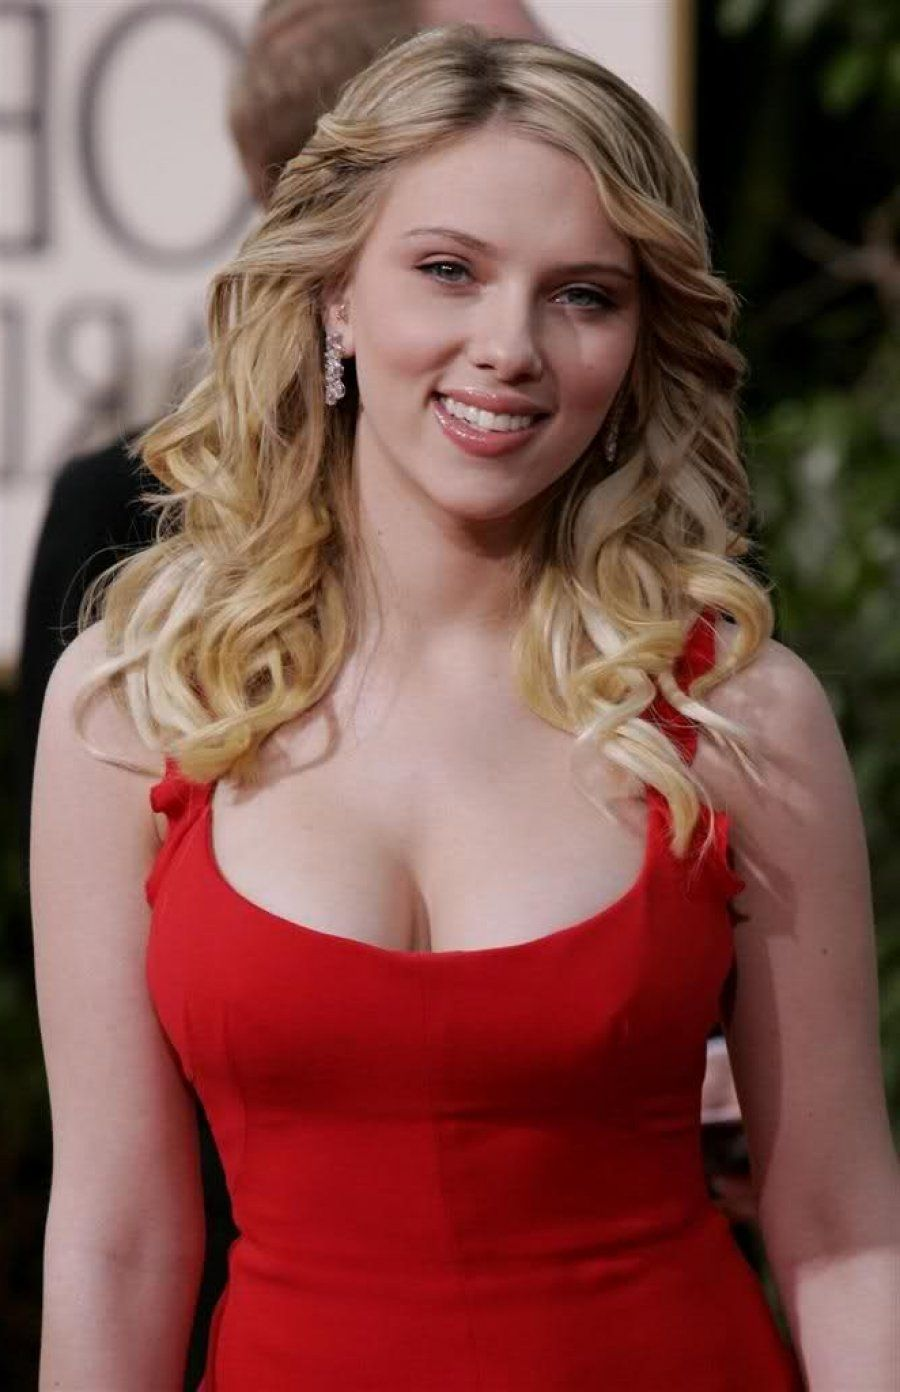 Scarlett Ingrid Johansson is an American actress and singer.